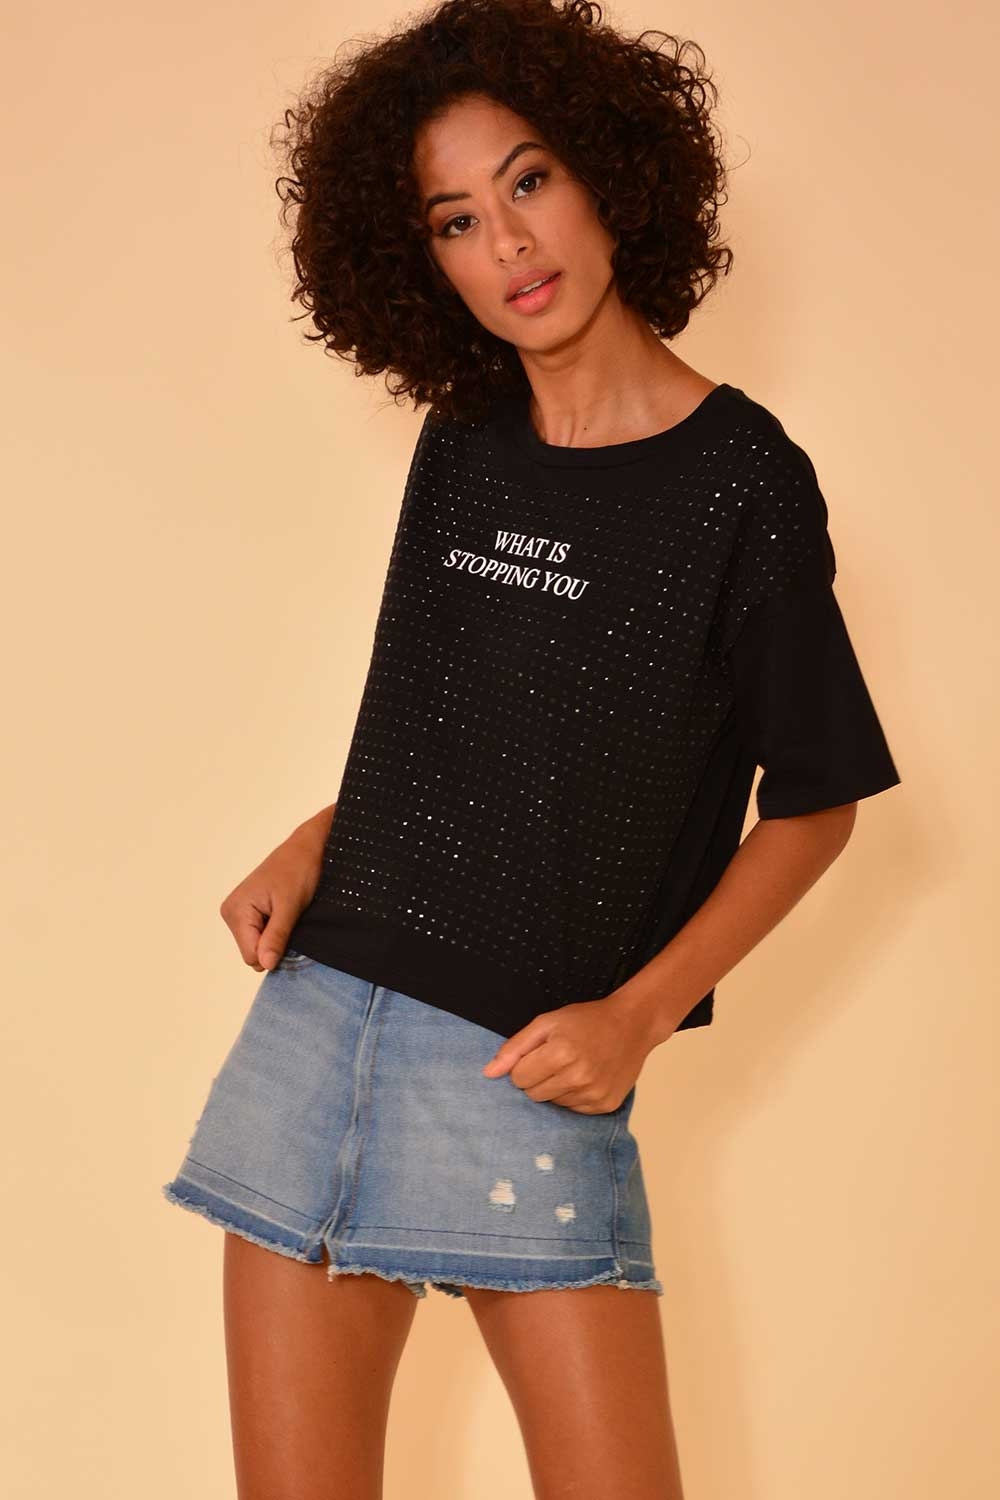 02011801_0002_1-BLUSA-WHAT-IS-STOPPING-YOU